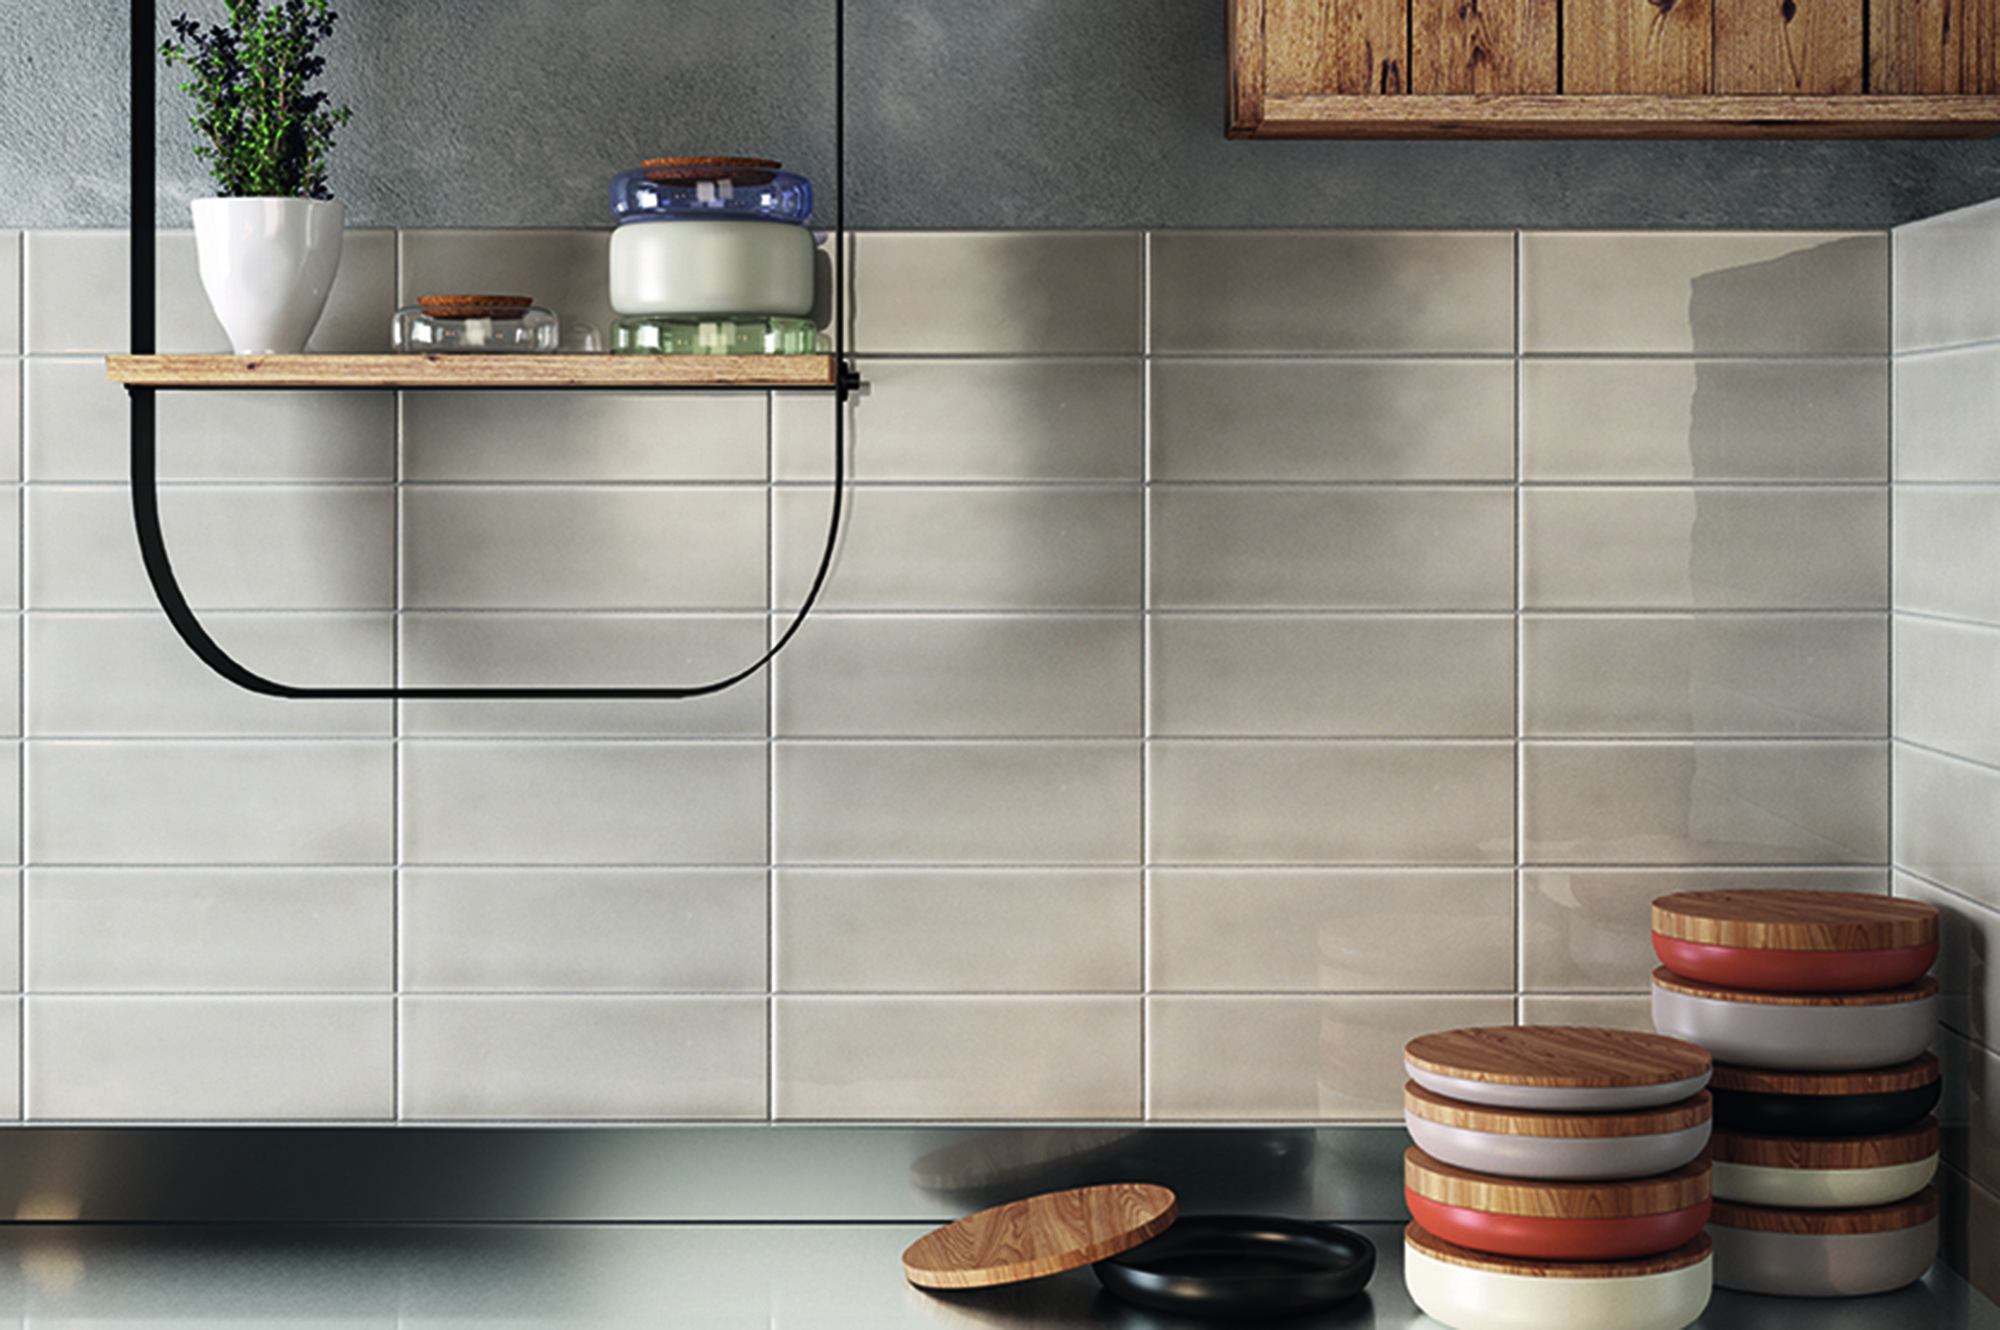 Wall Tile Kitchen Backsplash How To Create A Kitchen Backsplash Using Ceramic Or Porcelain Tile